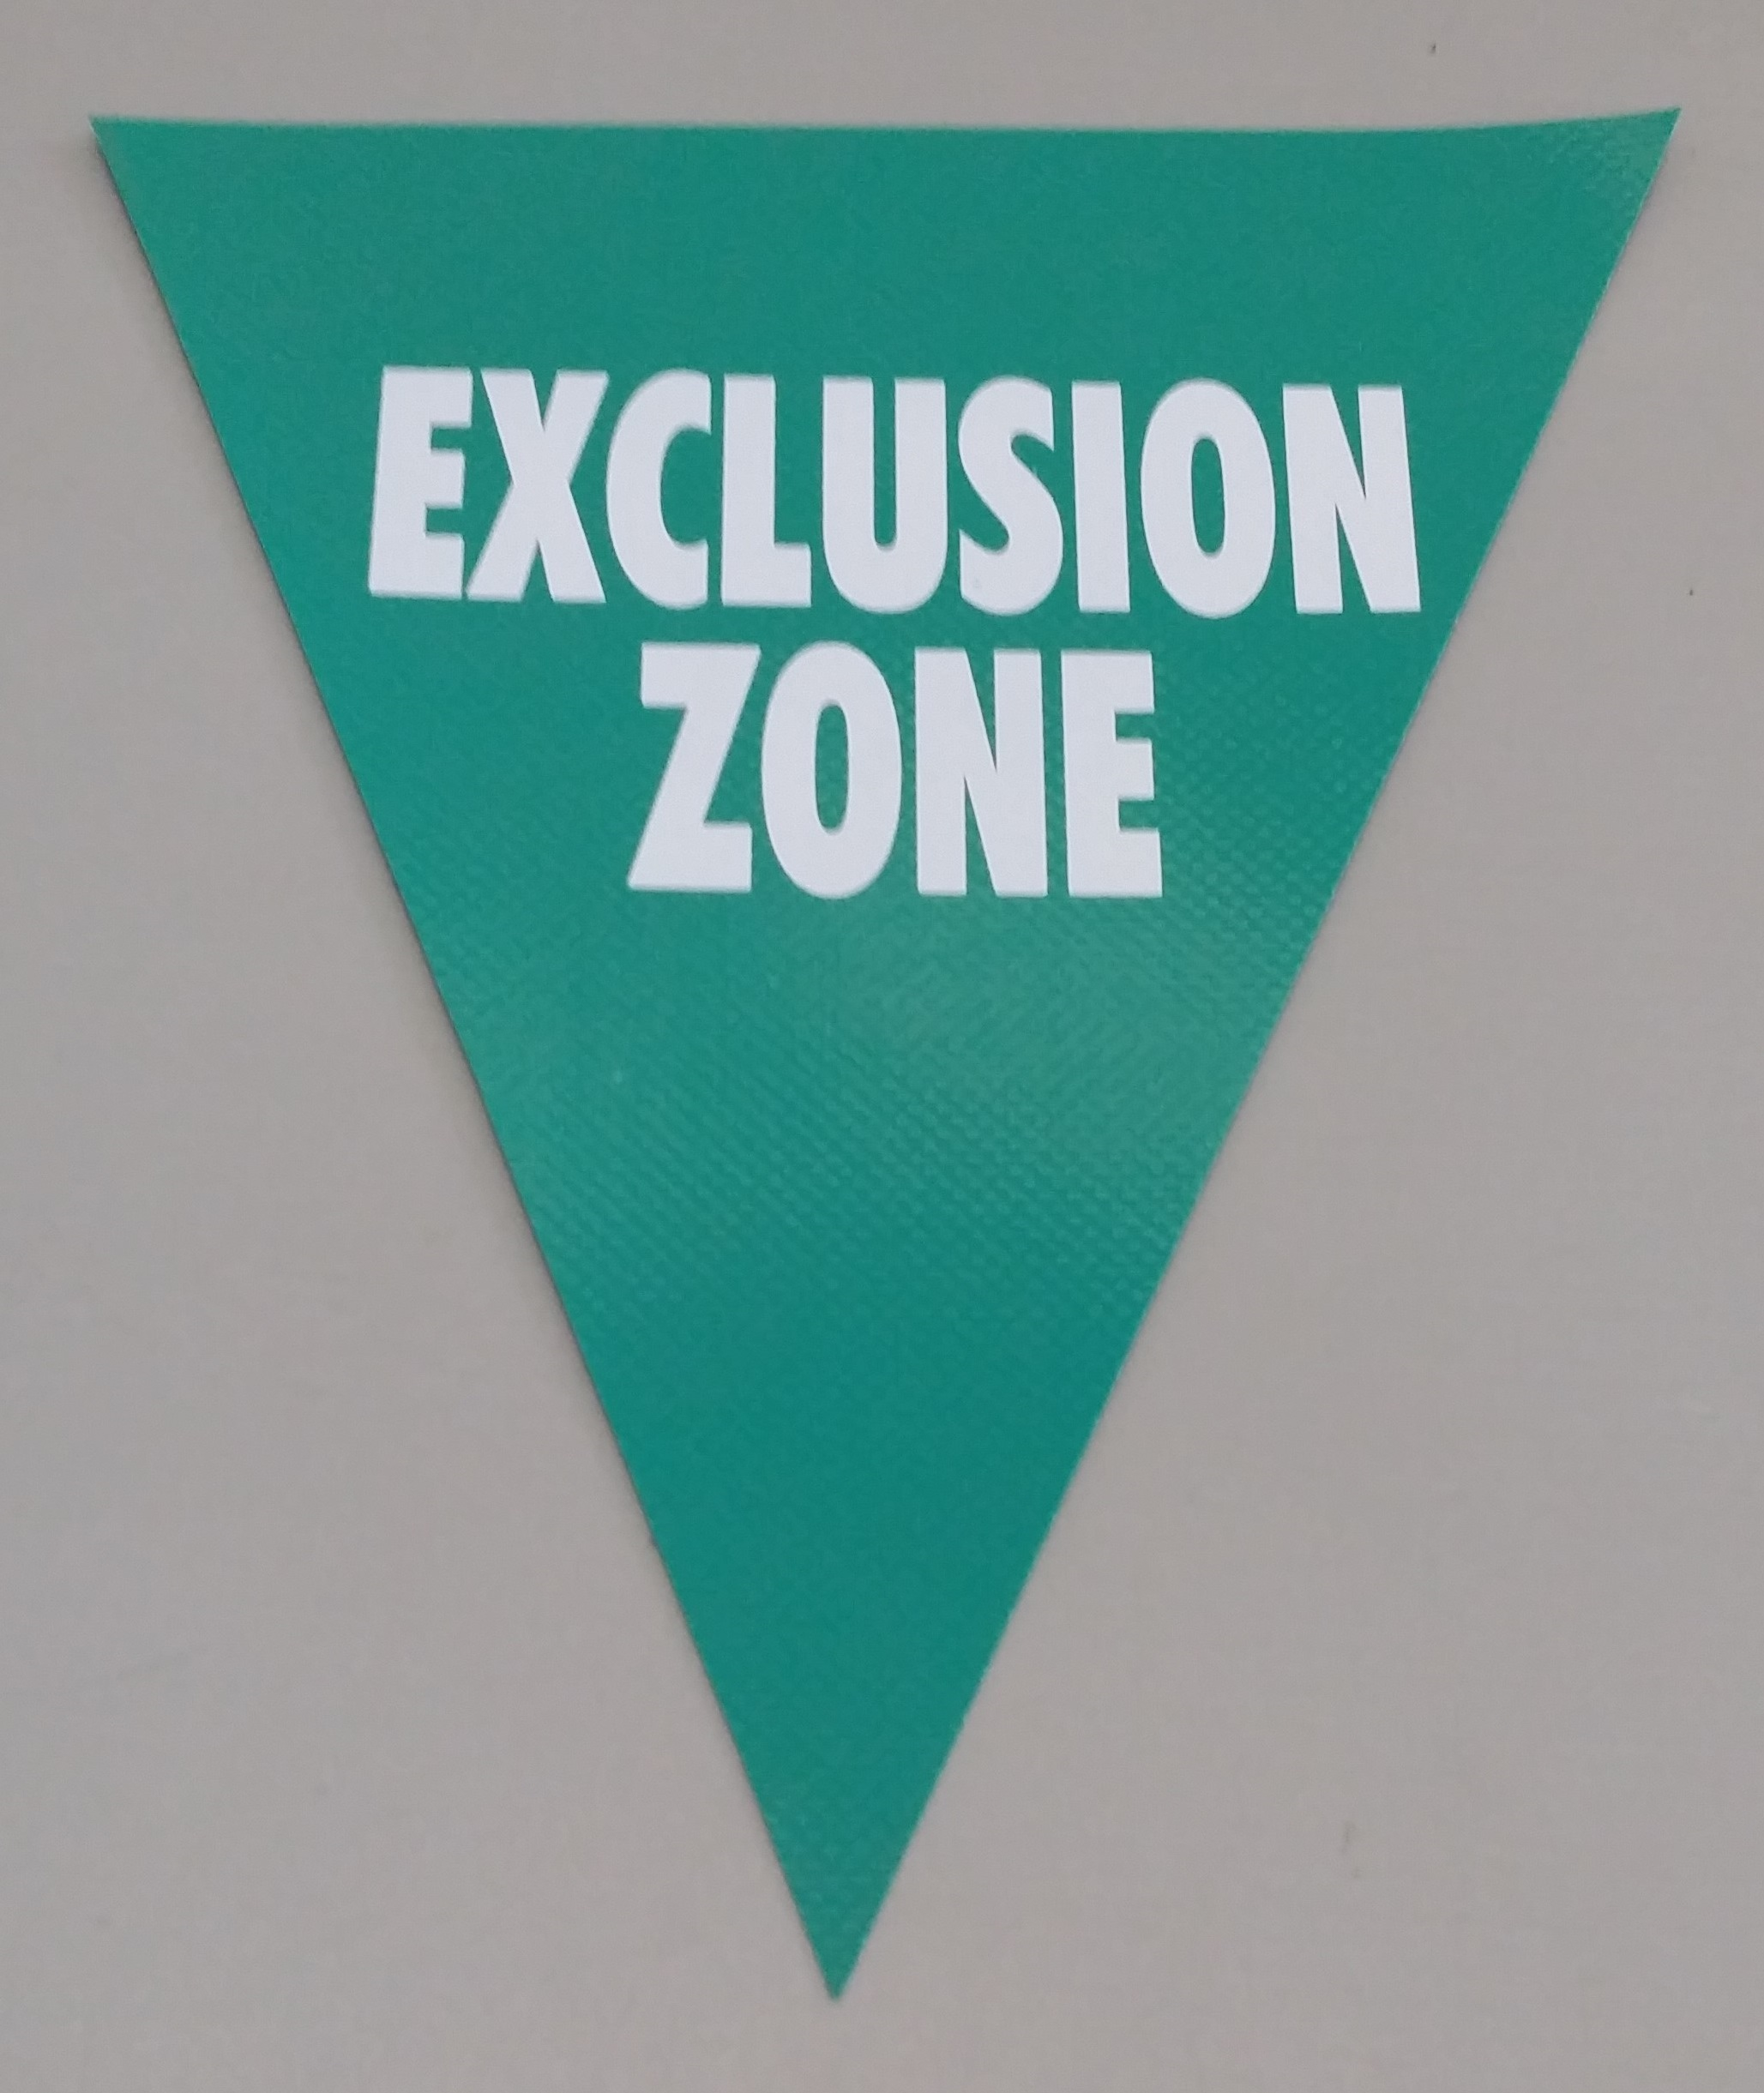 Exclusion Zone (green)